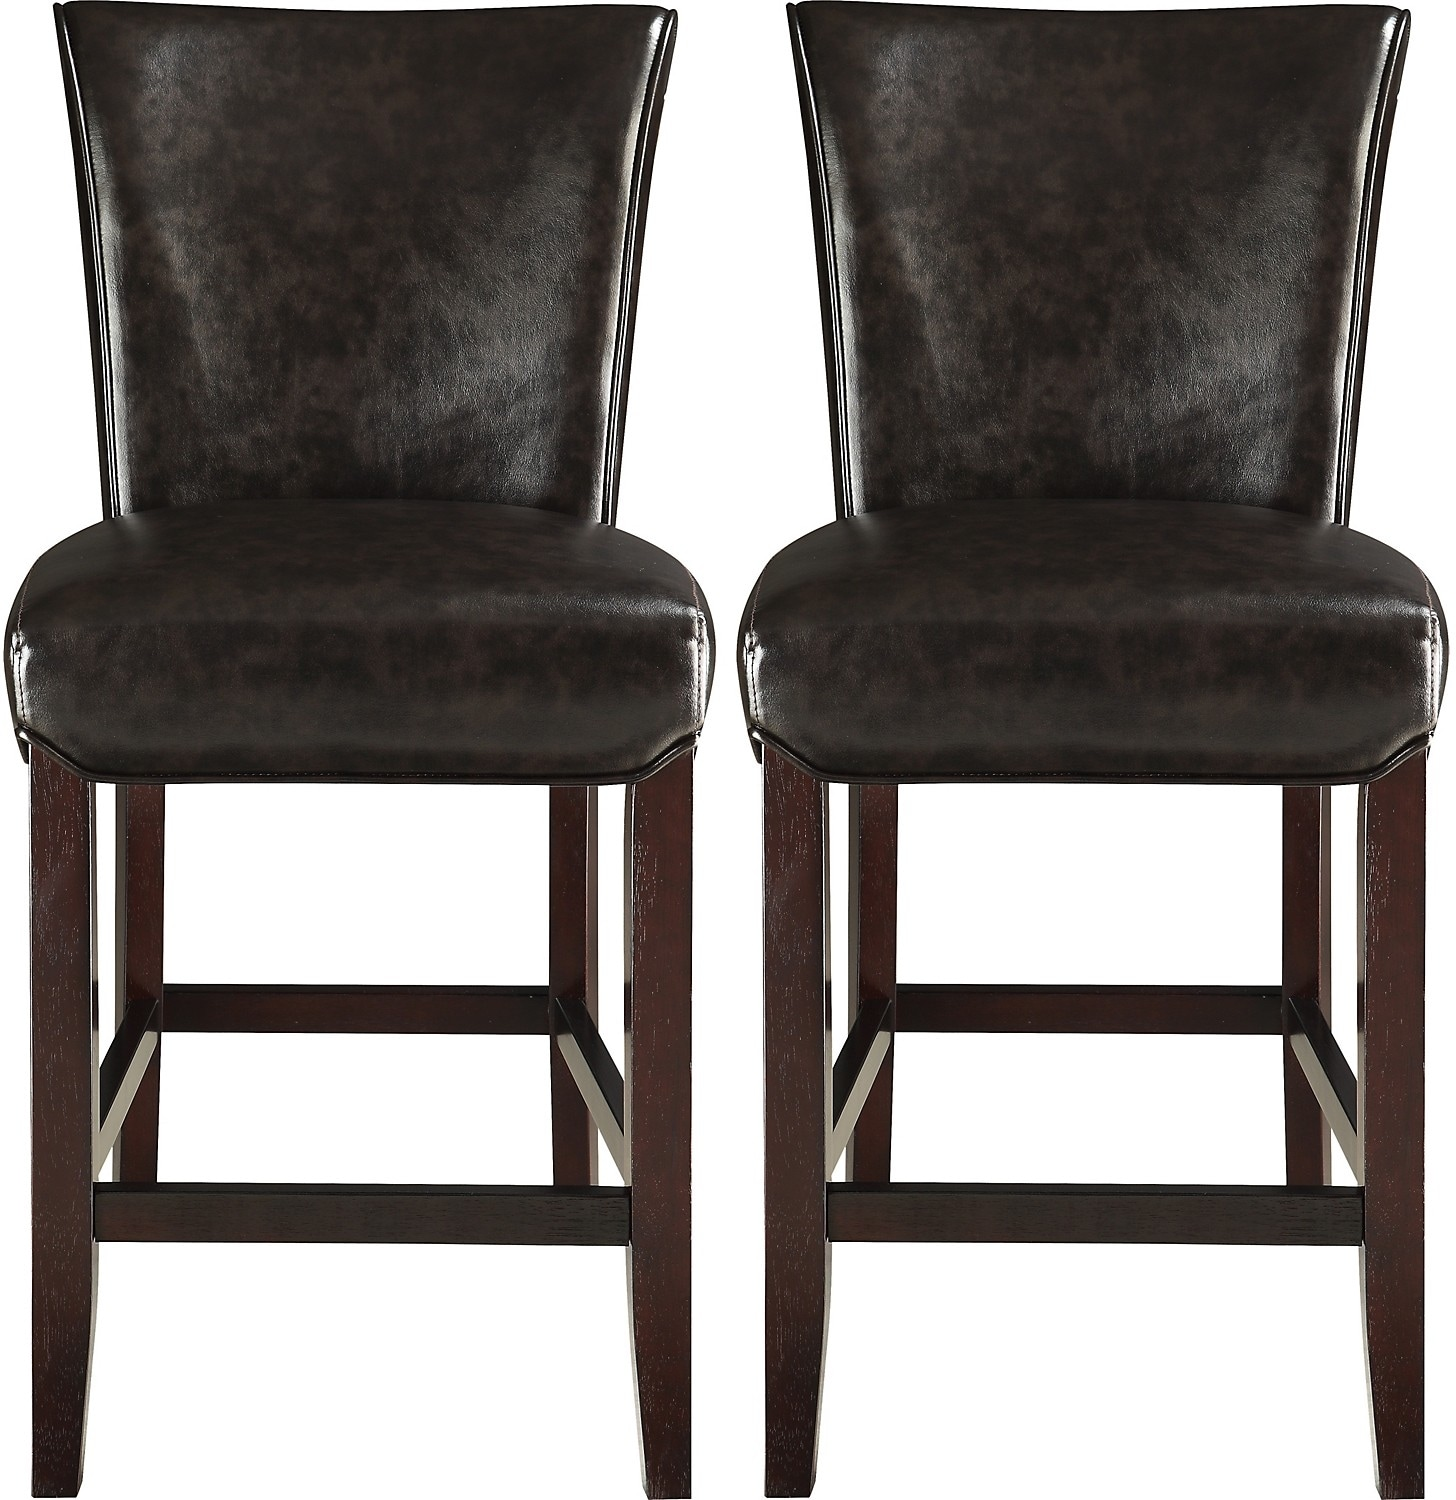 Brogan Counter-Height Dining Stool Set of 2 – Brown